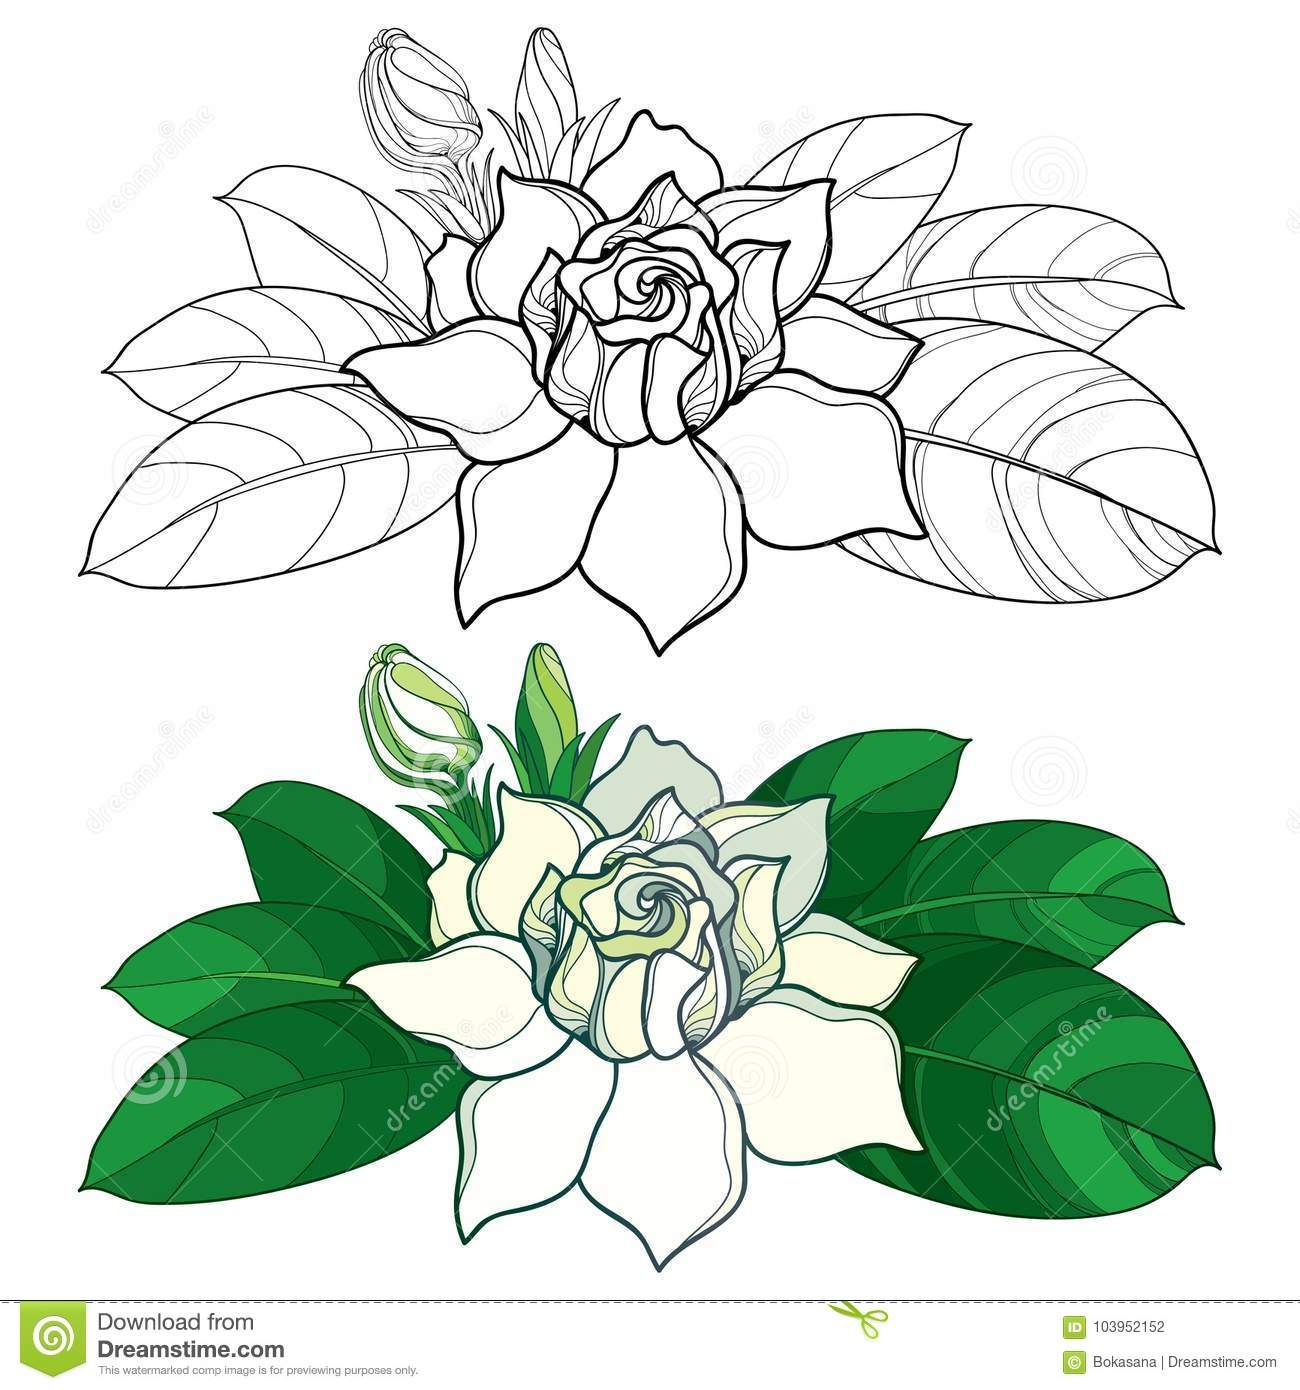 Vector Outline Gardenia Flower Bud And Ornate Leaves In Black And Pastel Color Isolated On White Background Stock Vec Flower Sketches Flower Drawing Drawings